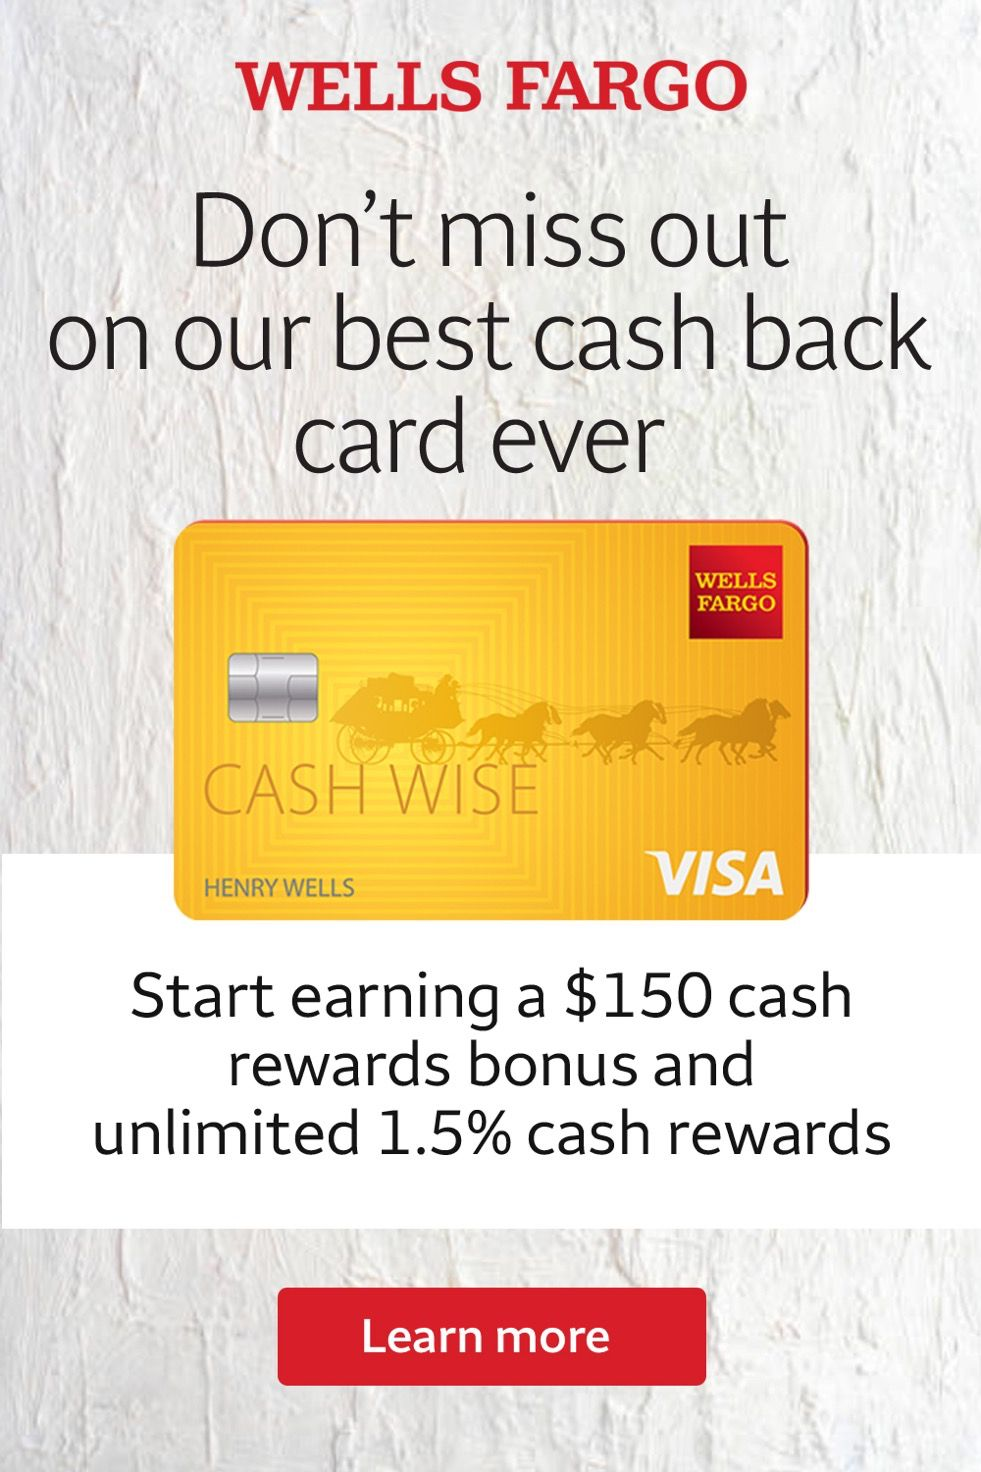 Apply For And Use Your Wells Fargo Cash Wise Visa Card On